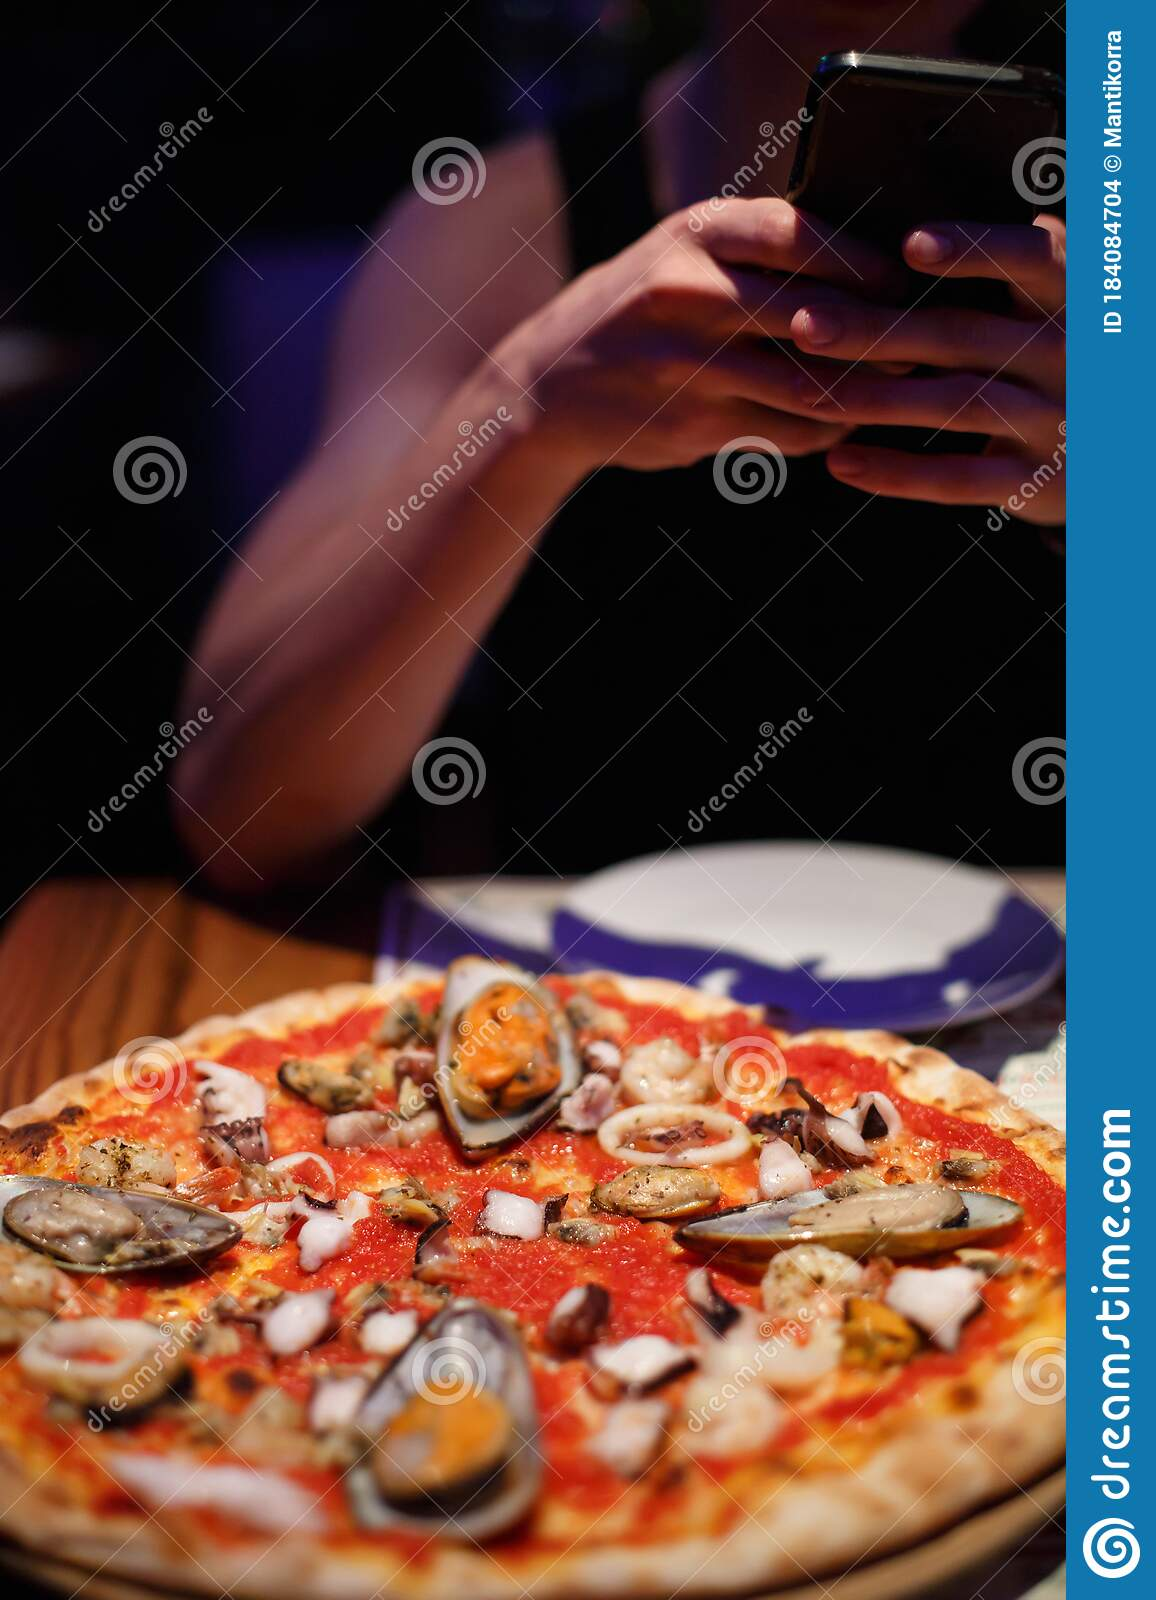 A Man Photographs Pizza In A Restaurant Or Cafe Stock Photo Image Of Marine Recipe 184084704